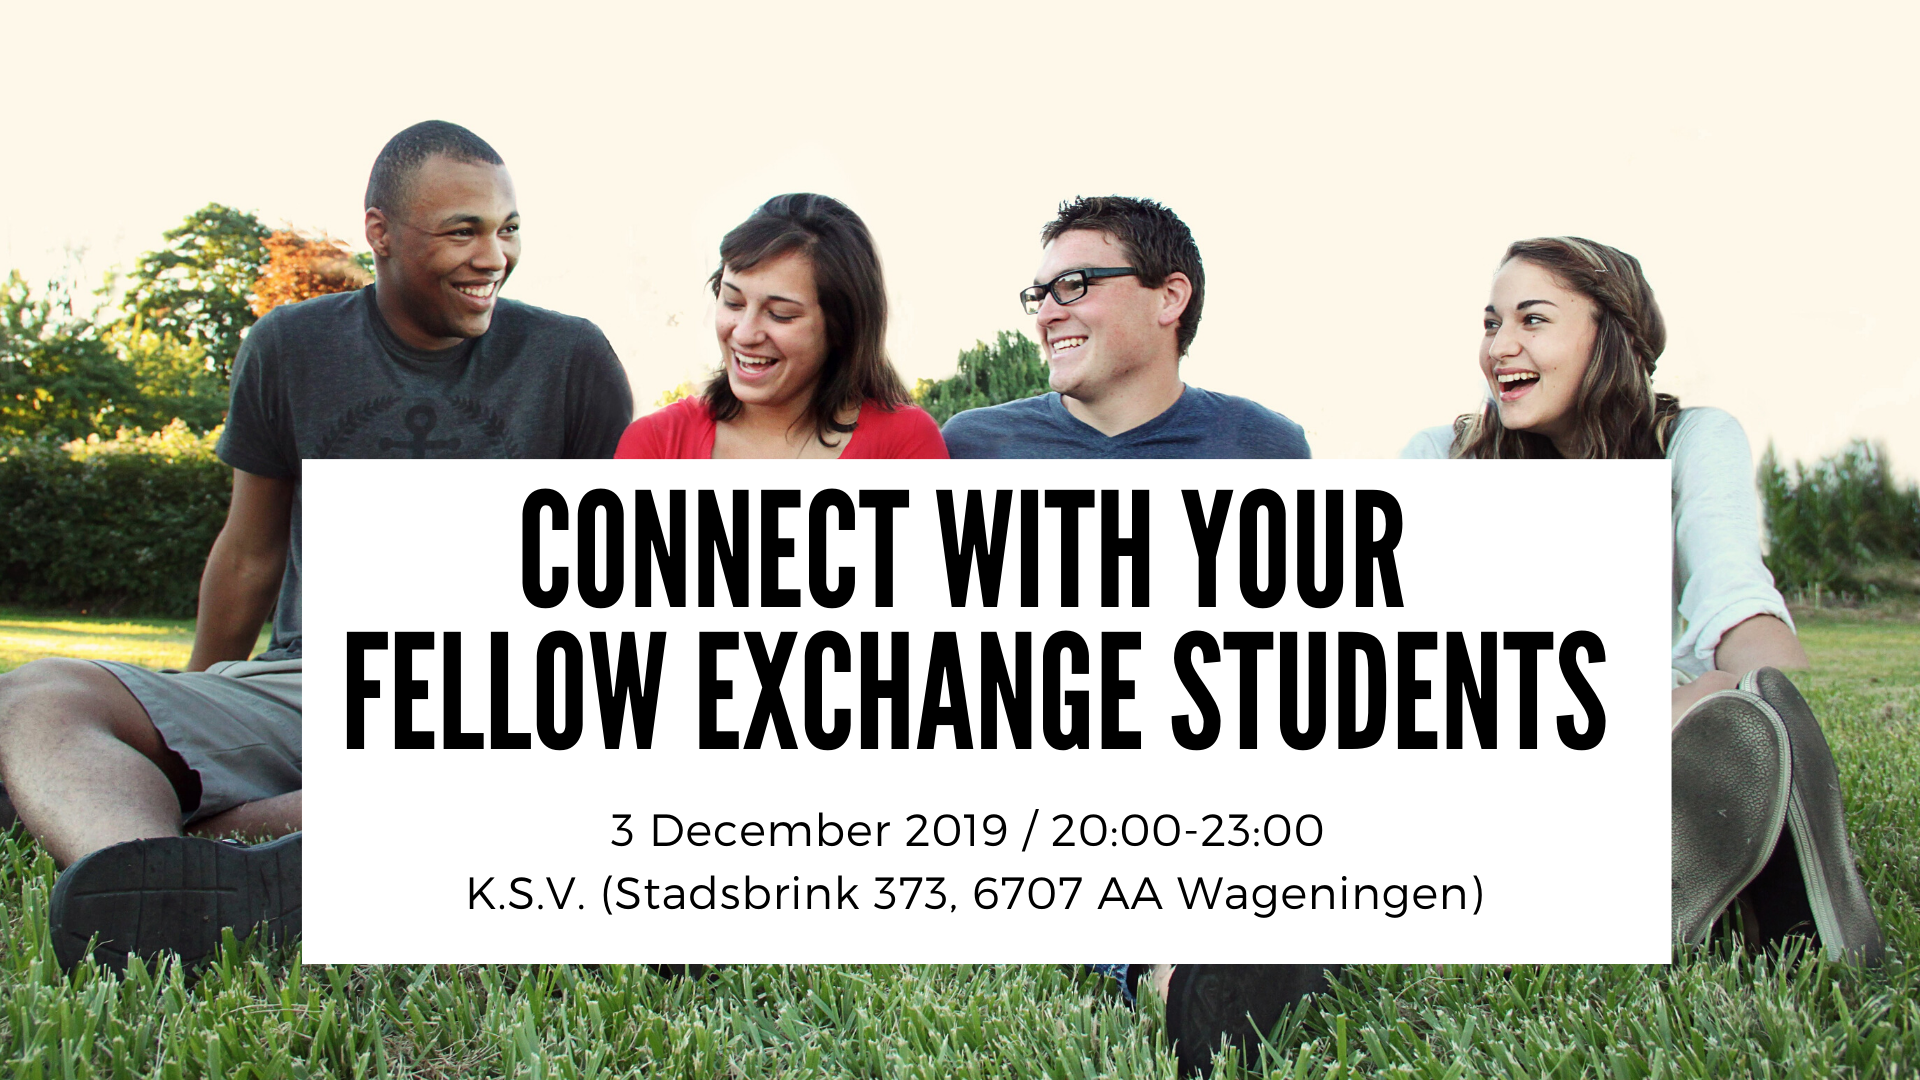 Connect with your fellow exchange students!